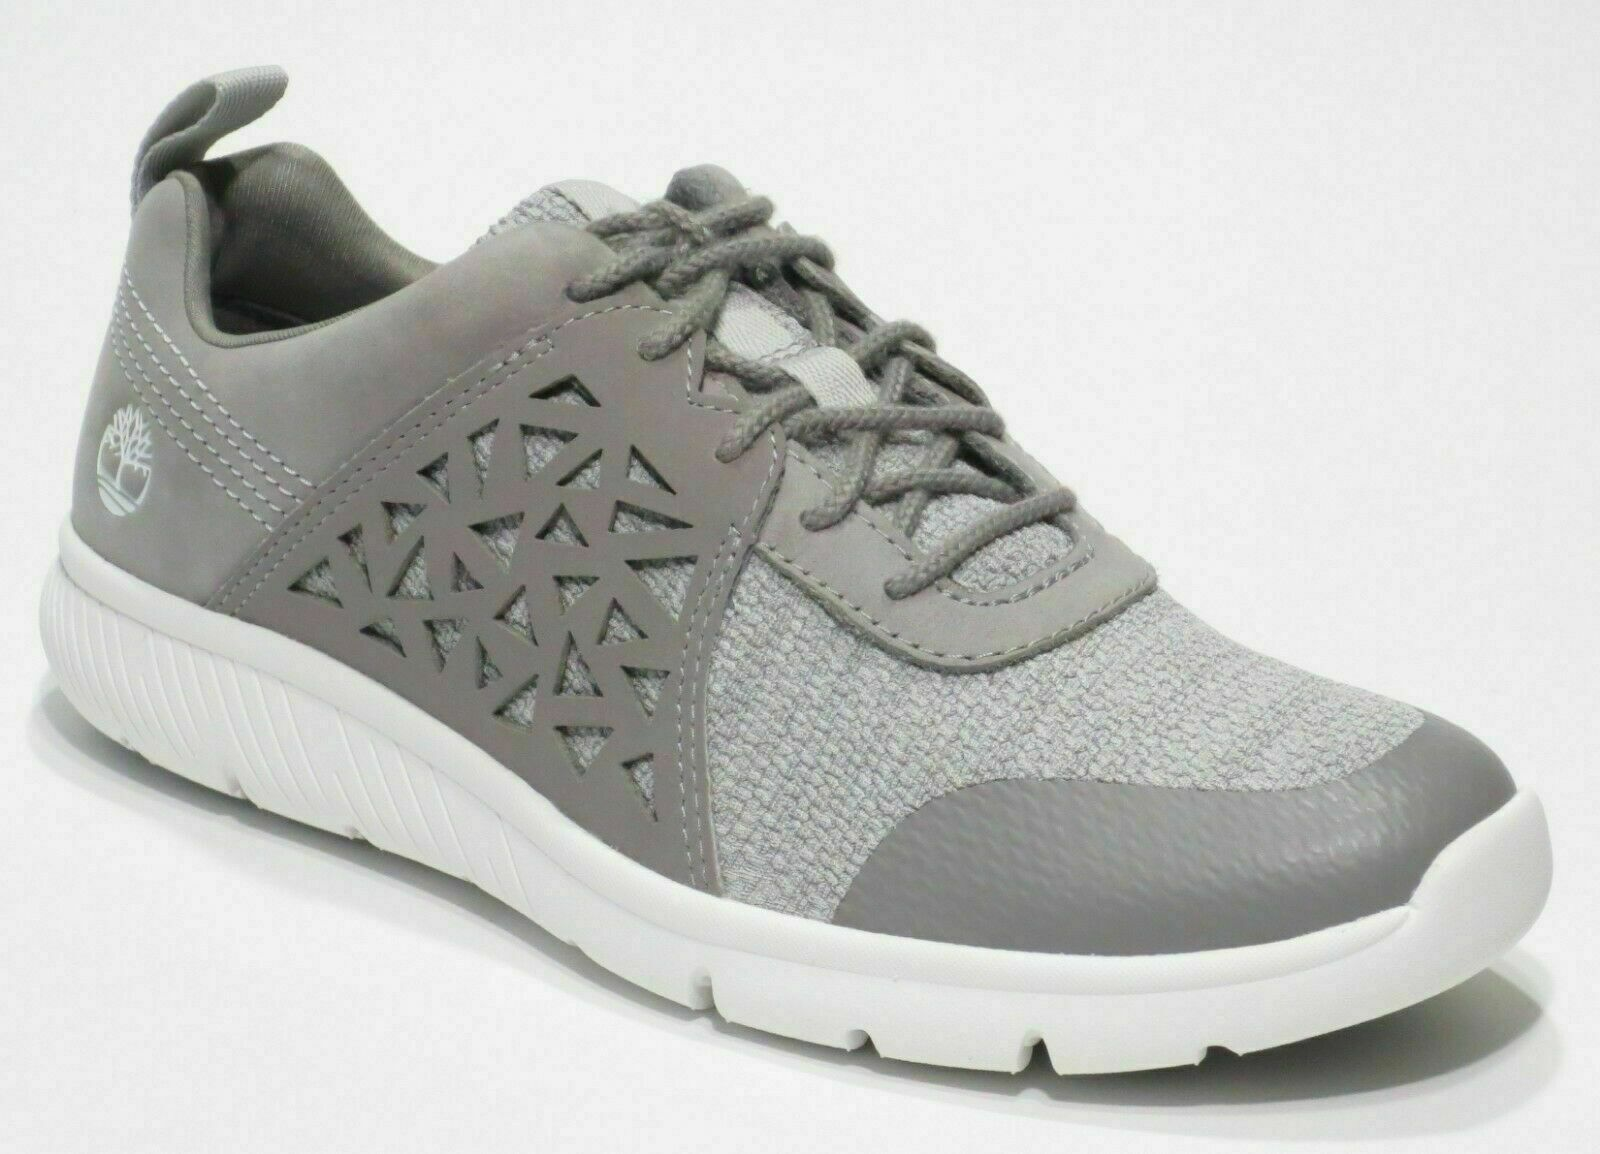 TIMBERLAND timberland womens grey running low top walking fitness shoes boltero a1qsi